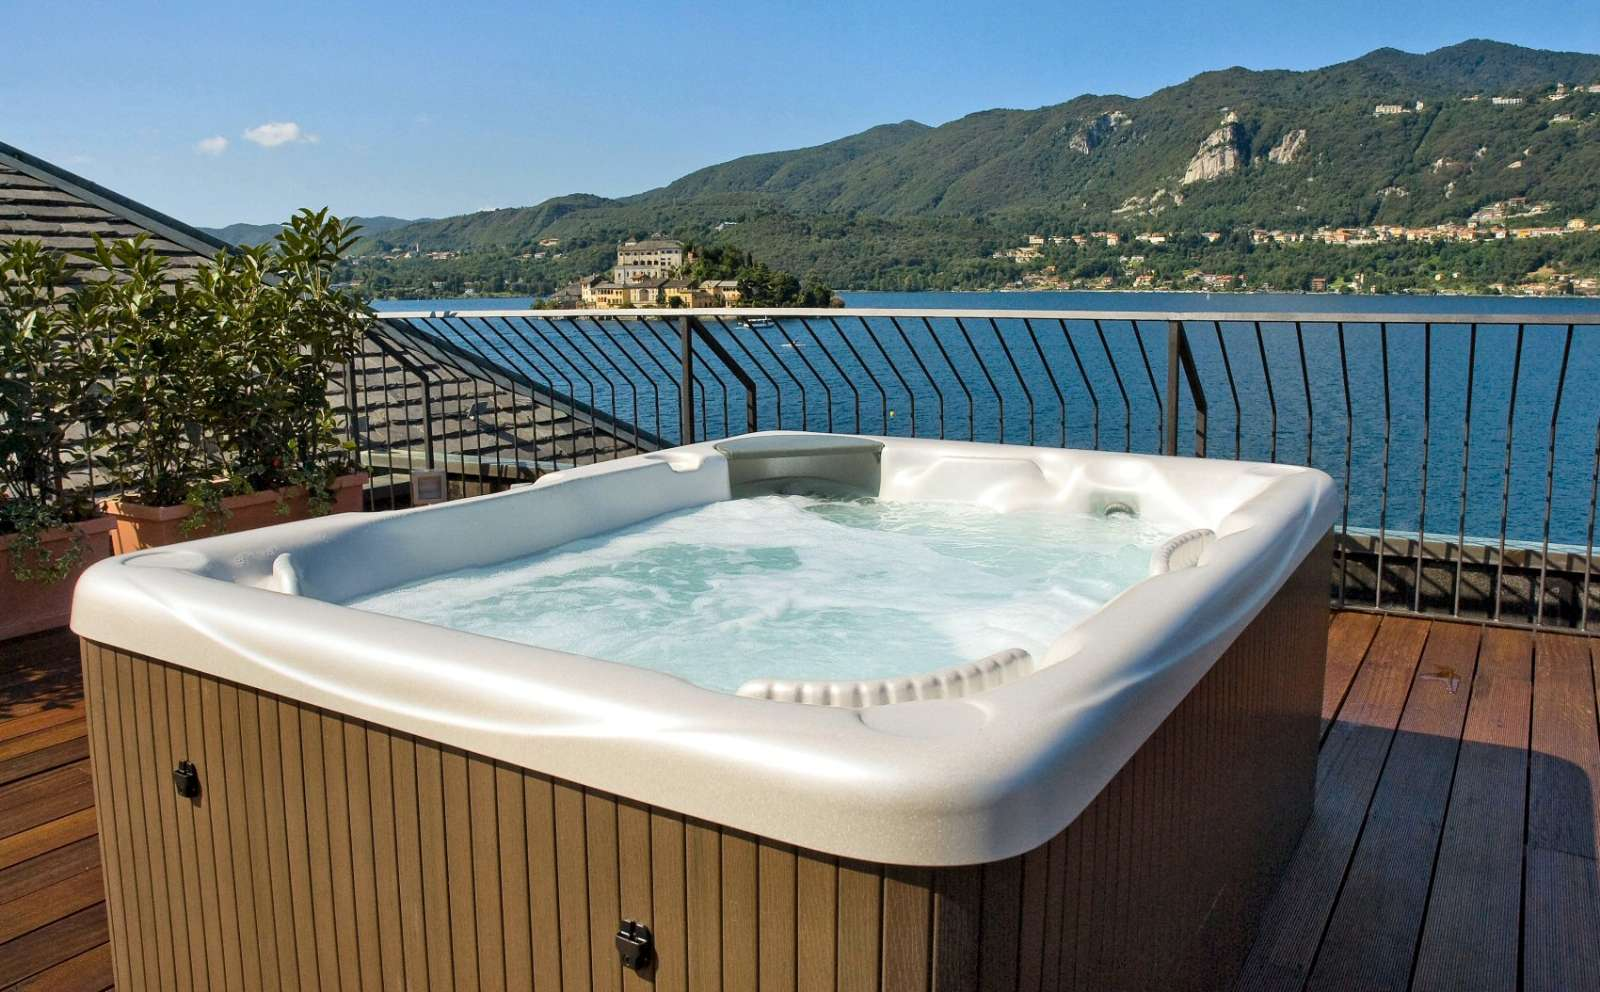 Panoramic roof terrace jacuzzi (extra charge)